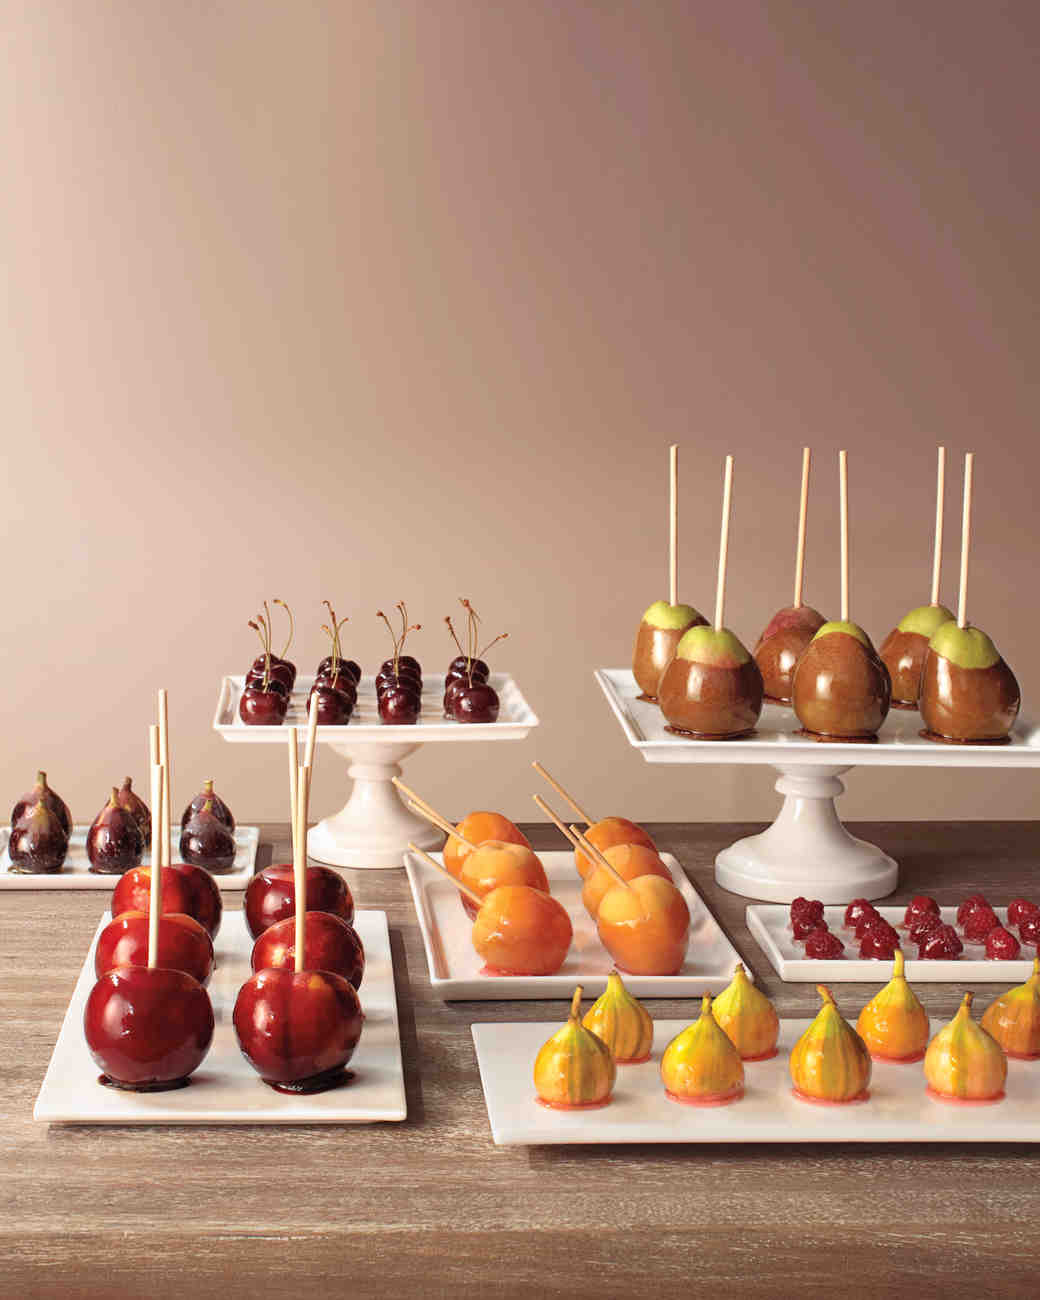 How to make candied fruits